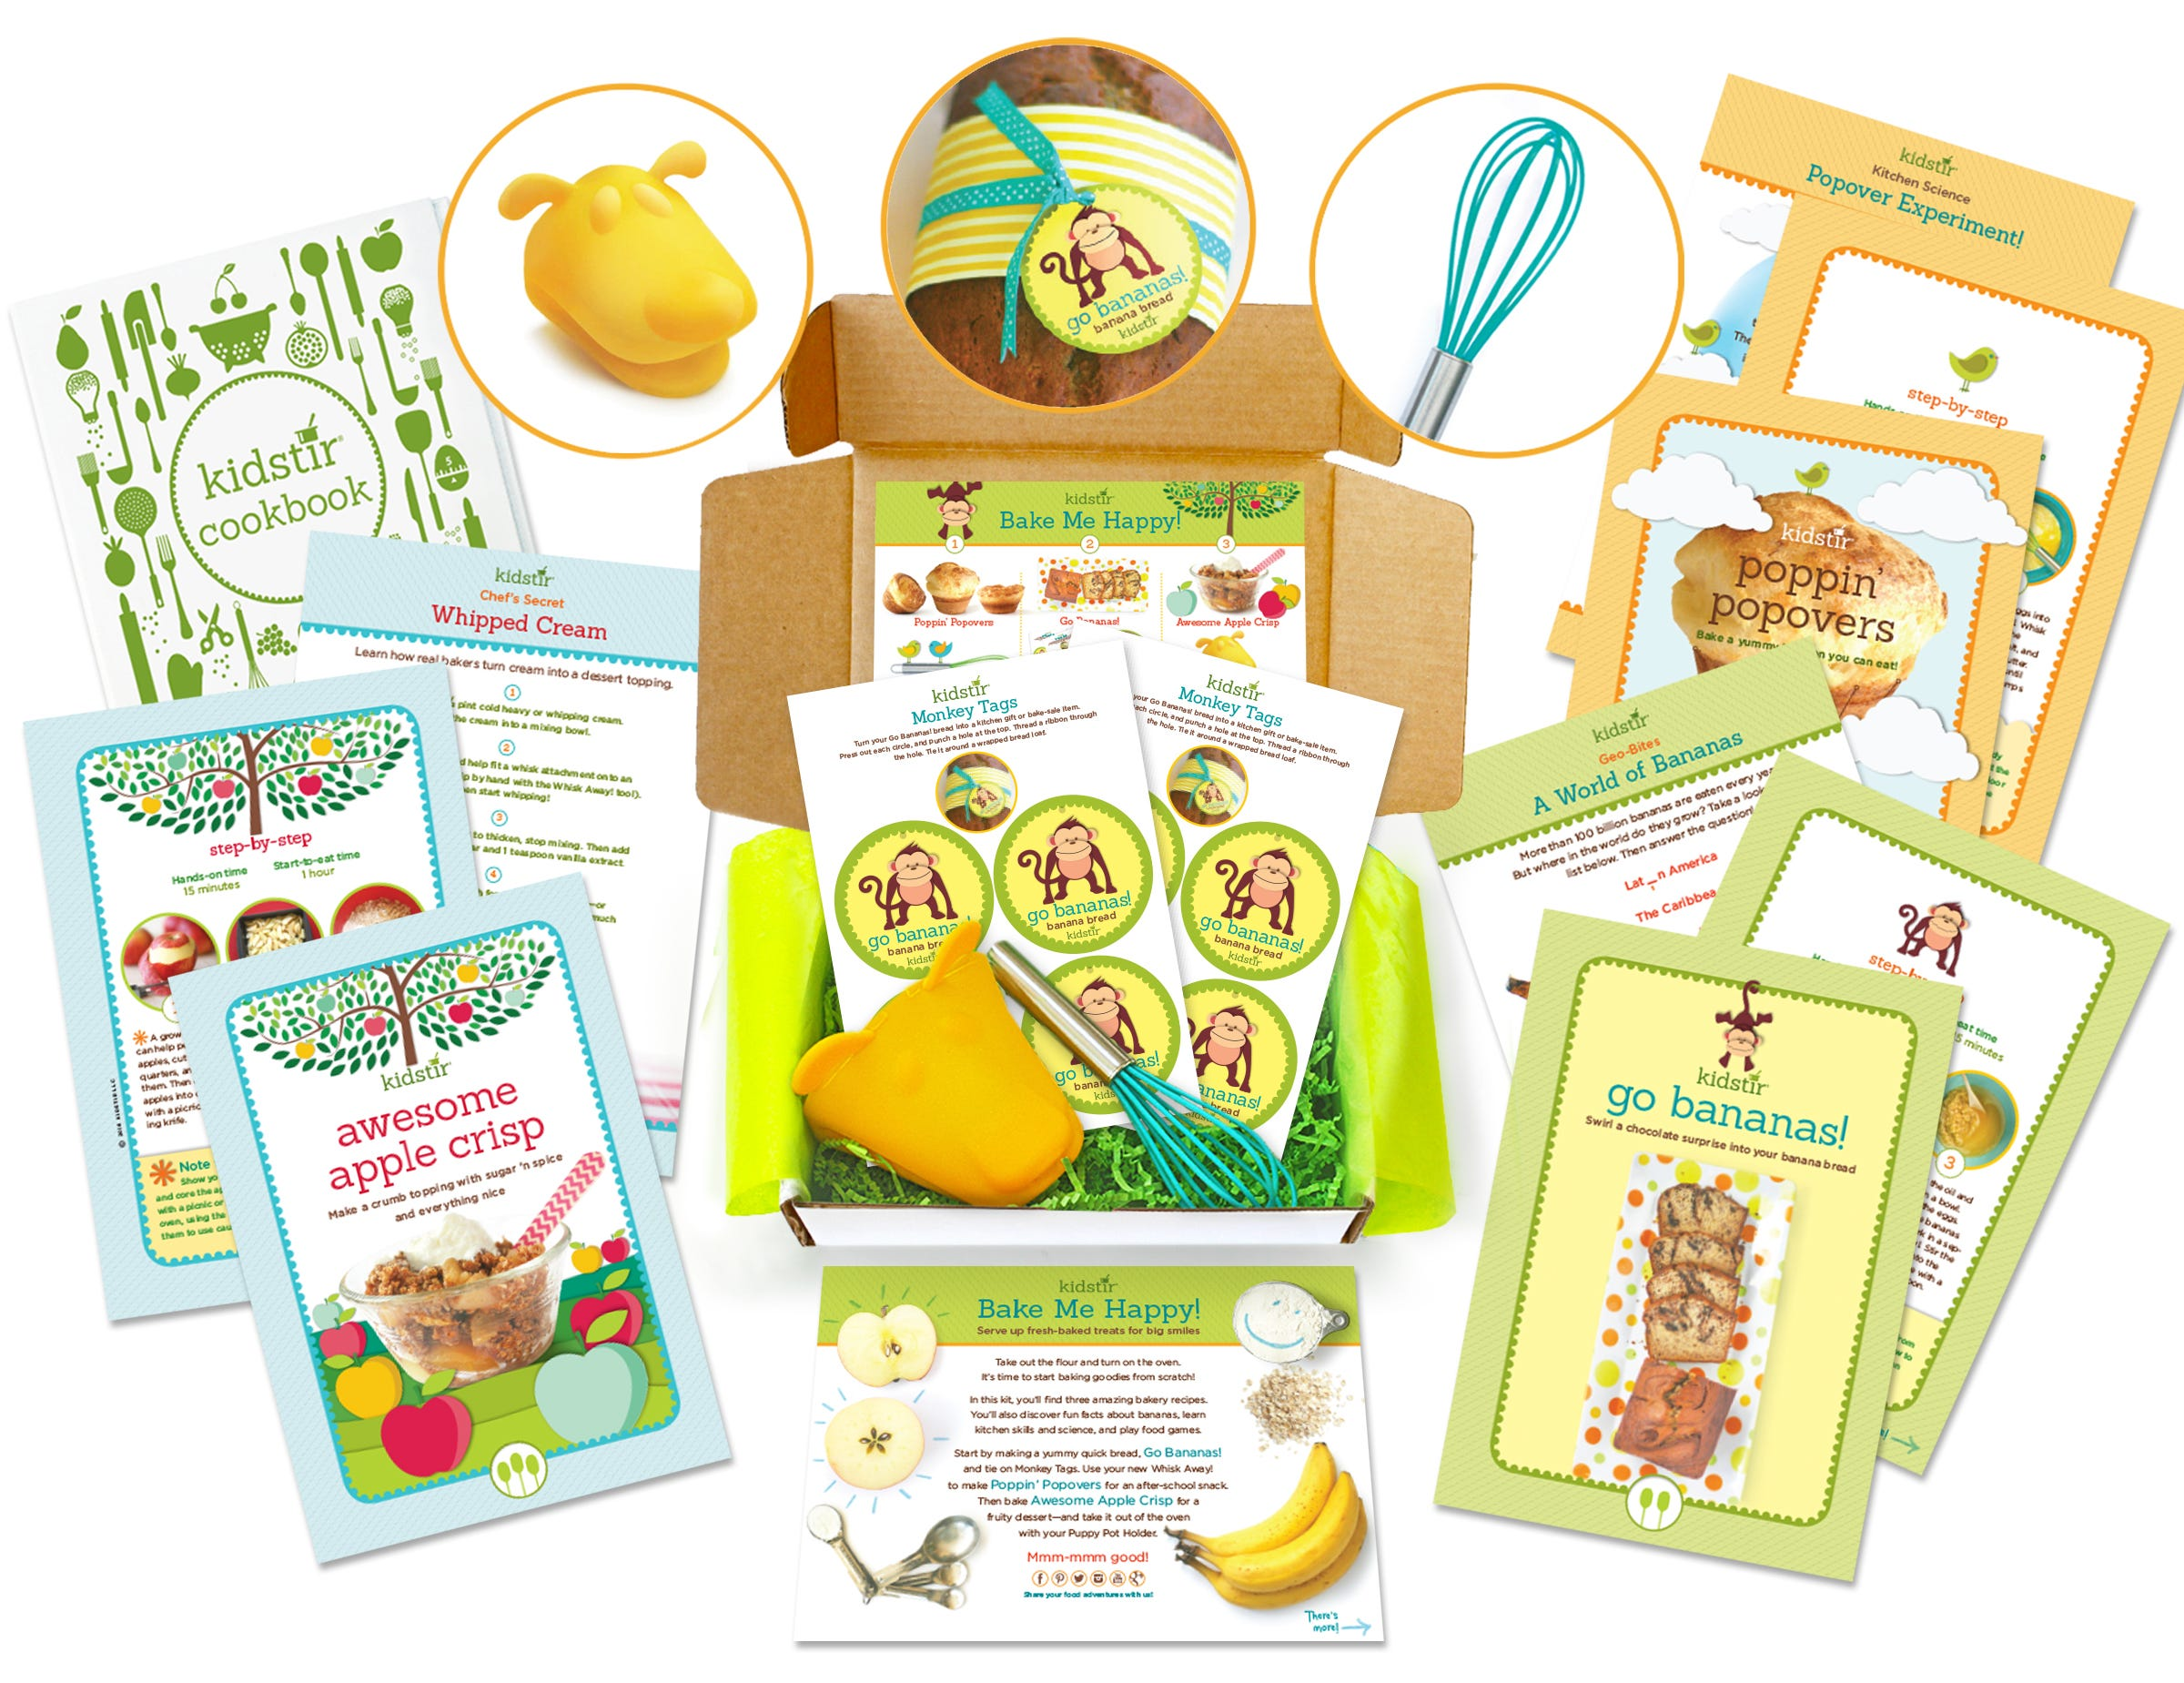 A subscription box with cooking utensils and recipe cards